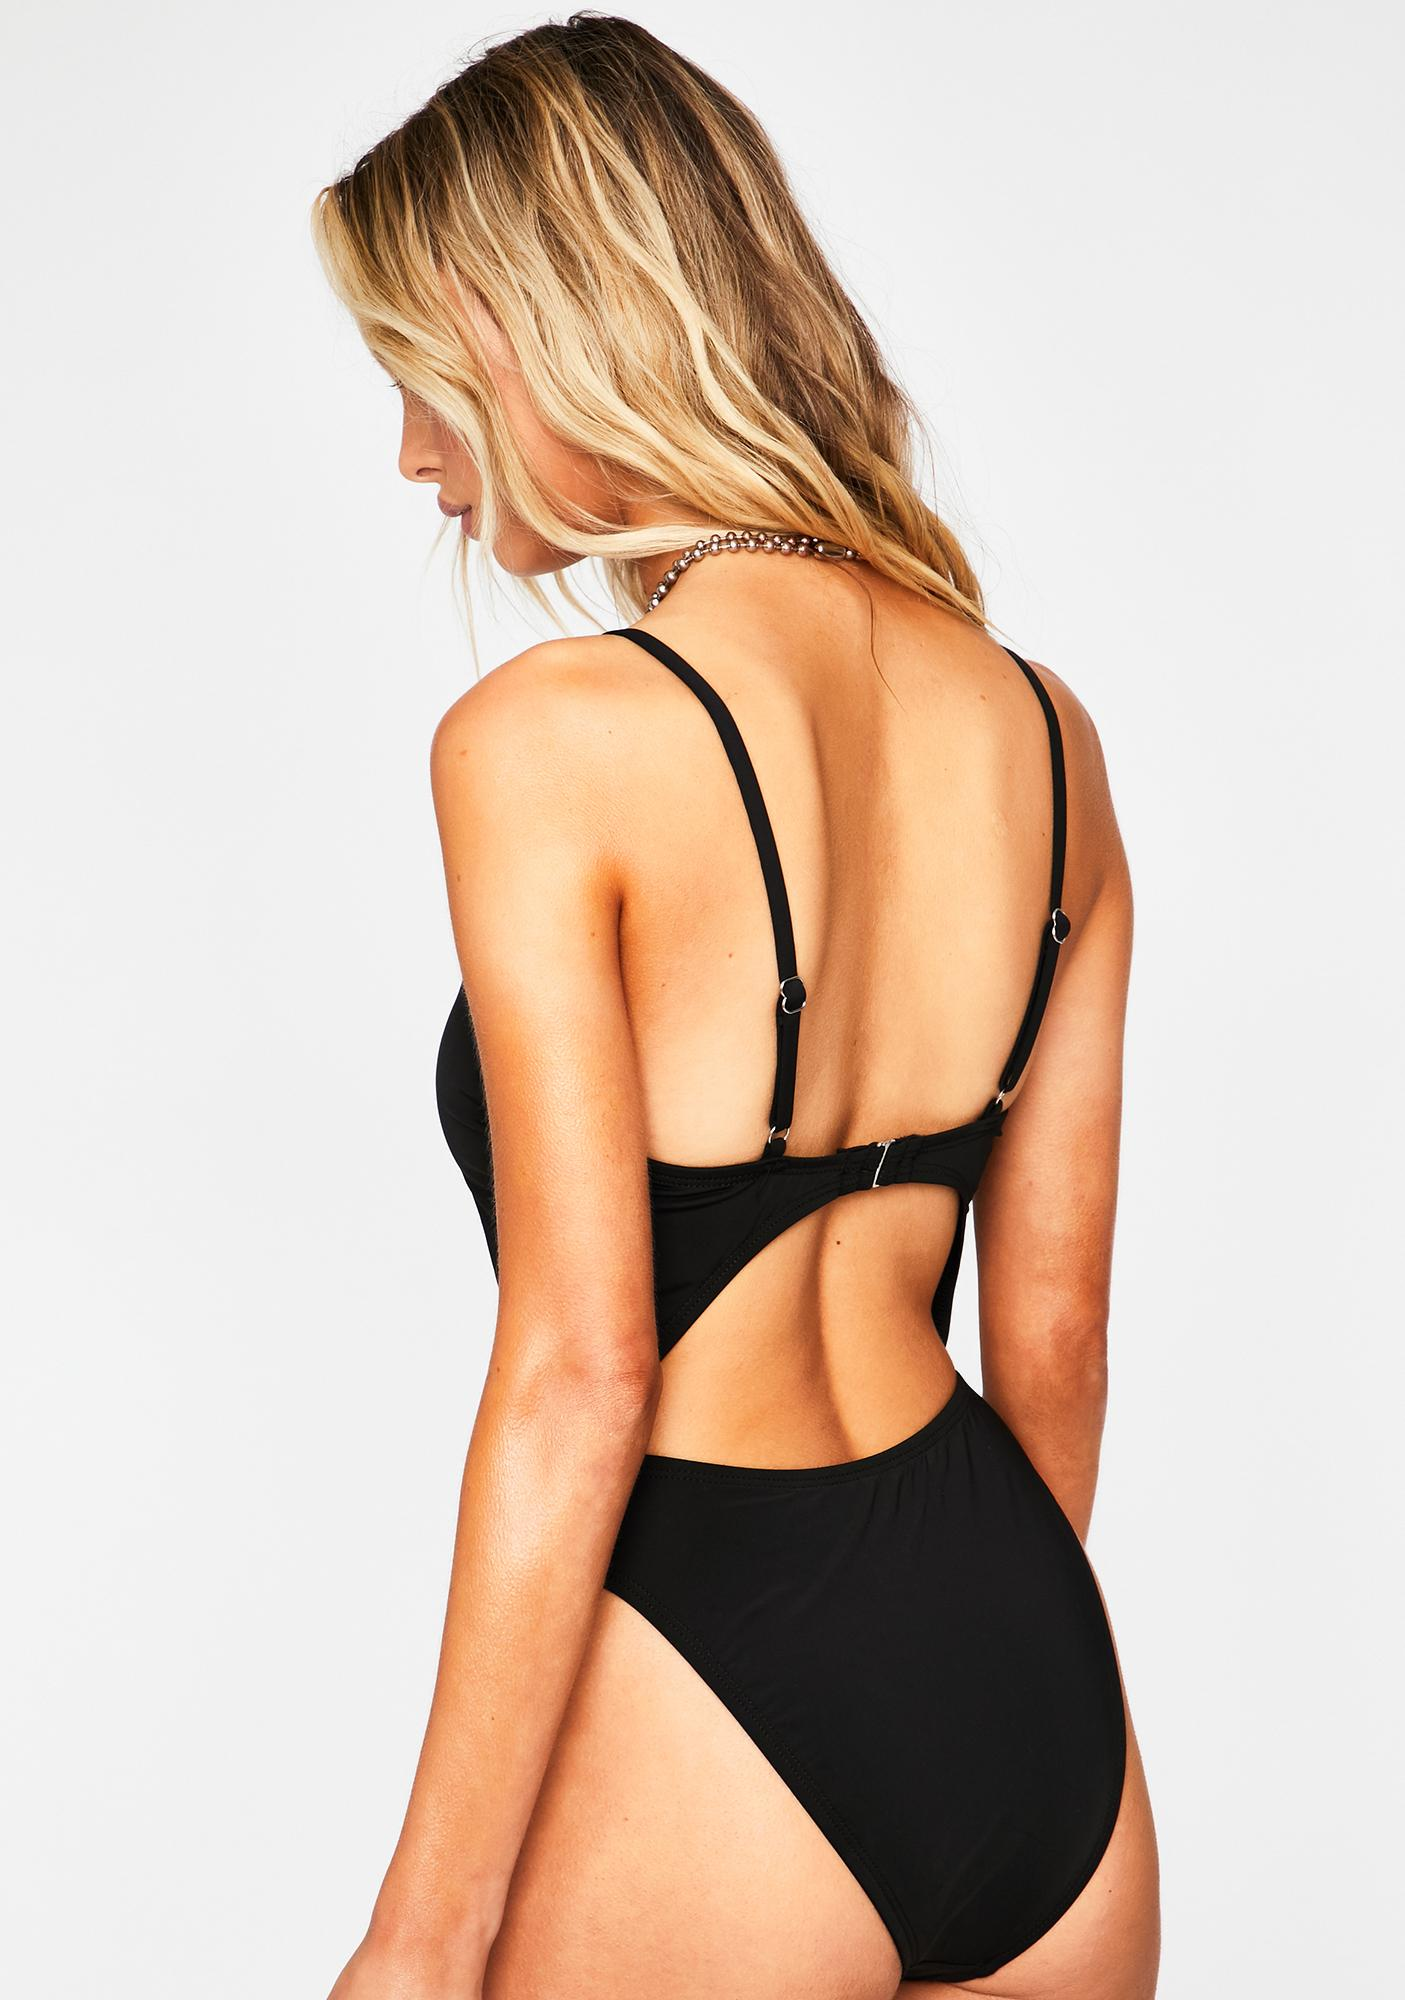 Dippin' Daisy's Glam One Piece Swimsuit